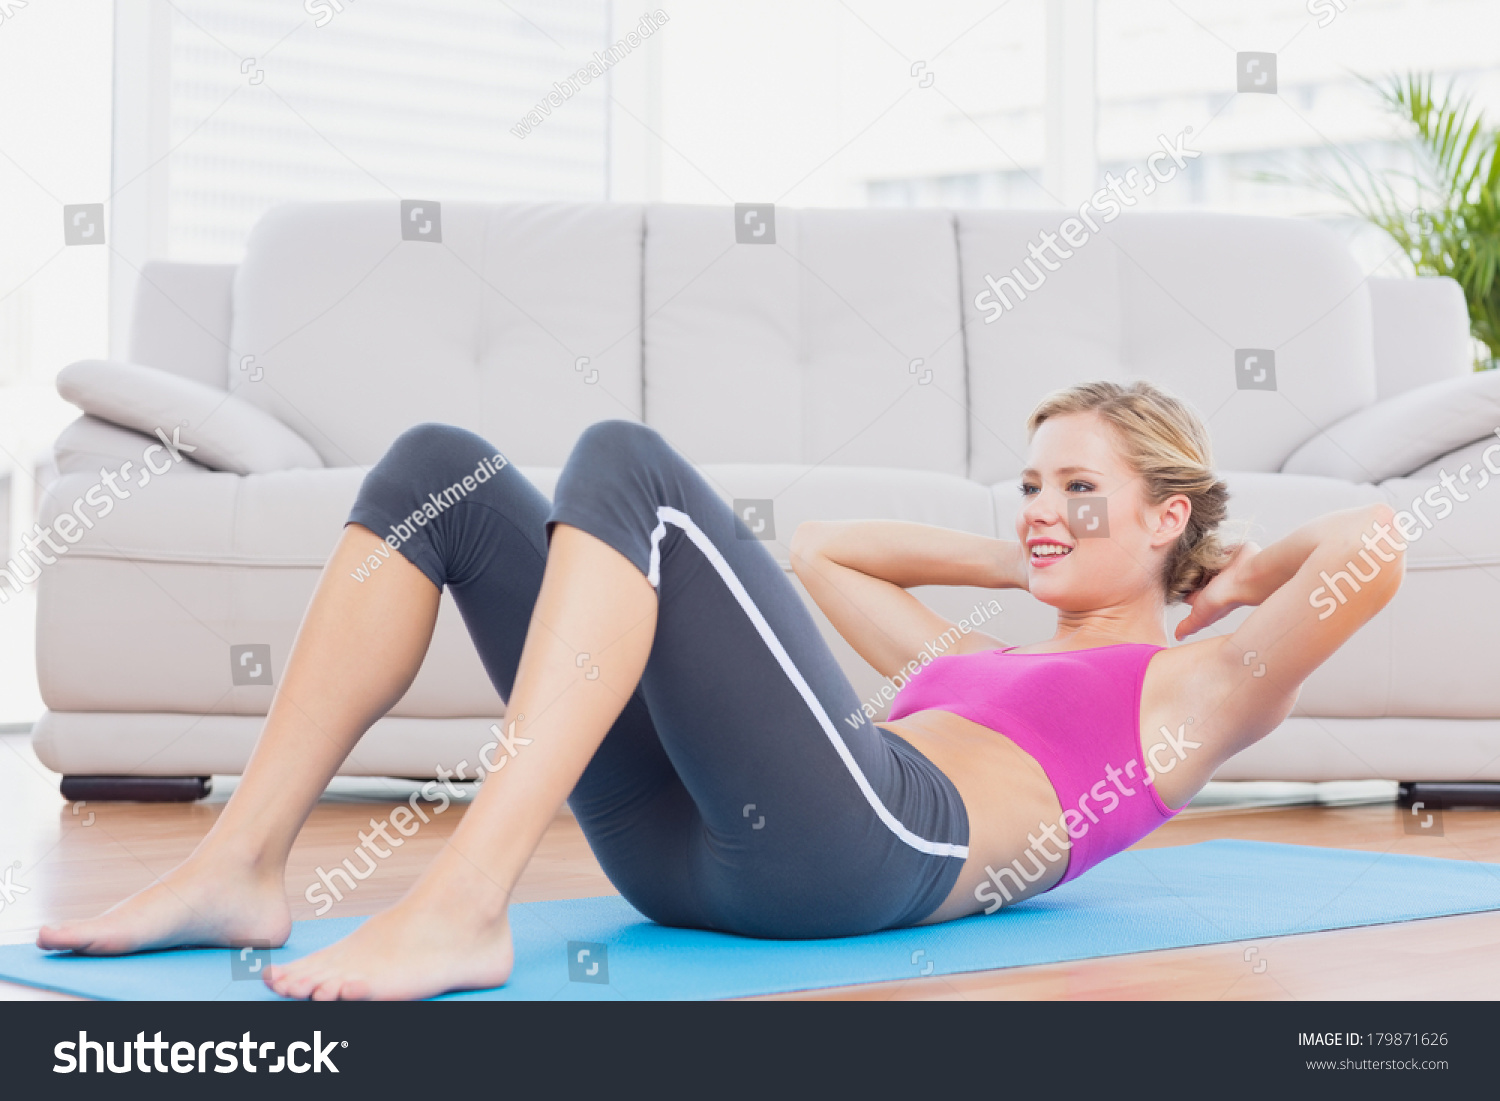 Slim Blonde Doing Sit Ups On Exercise Mat At Home In The Living Room 179871626